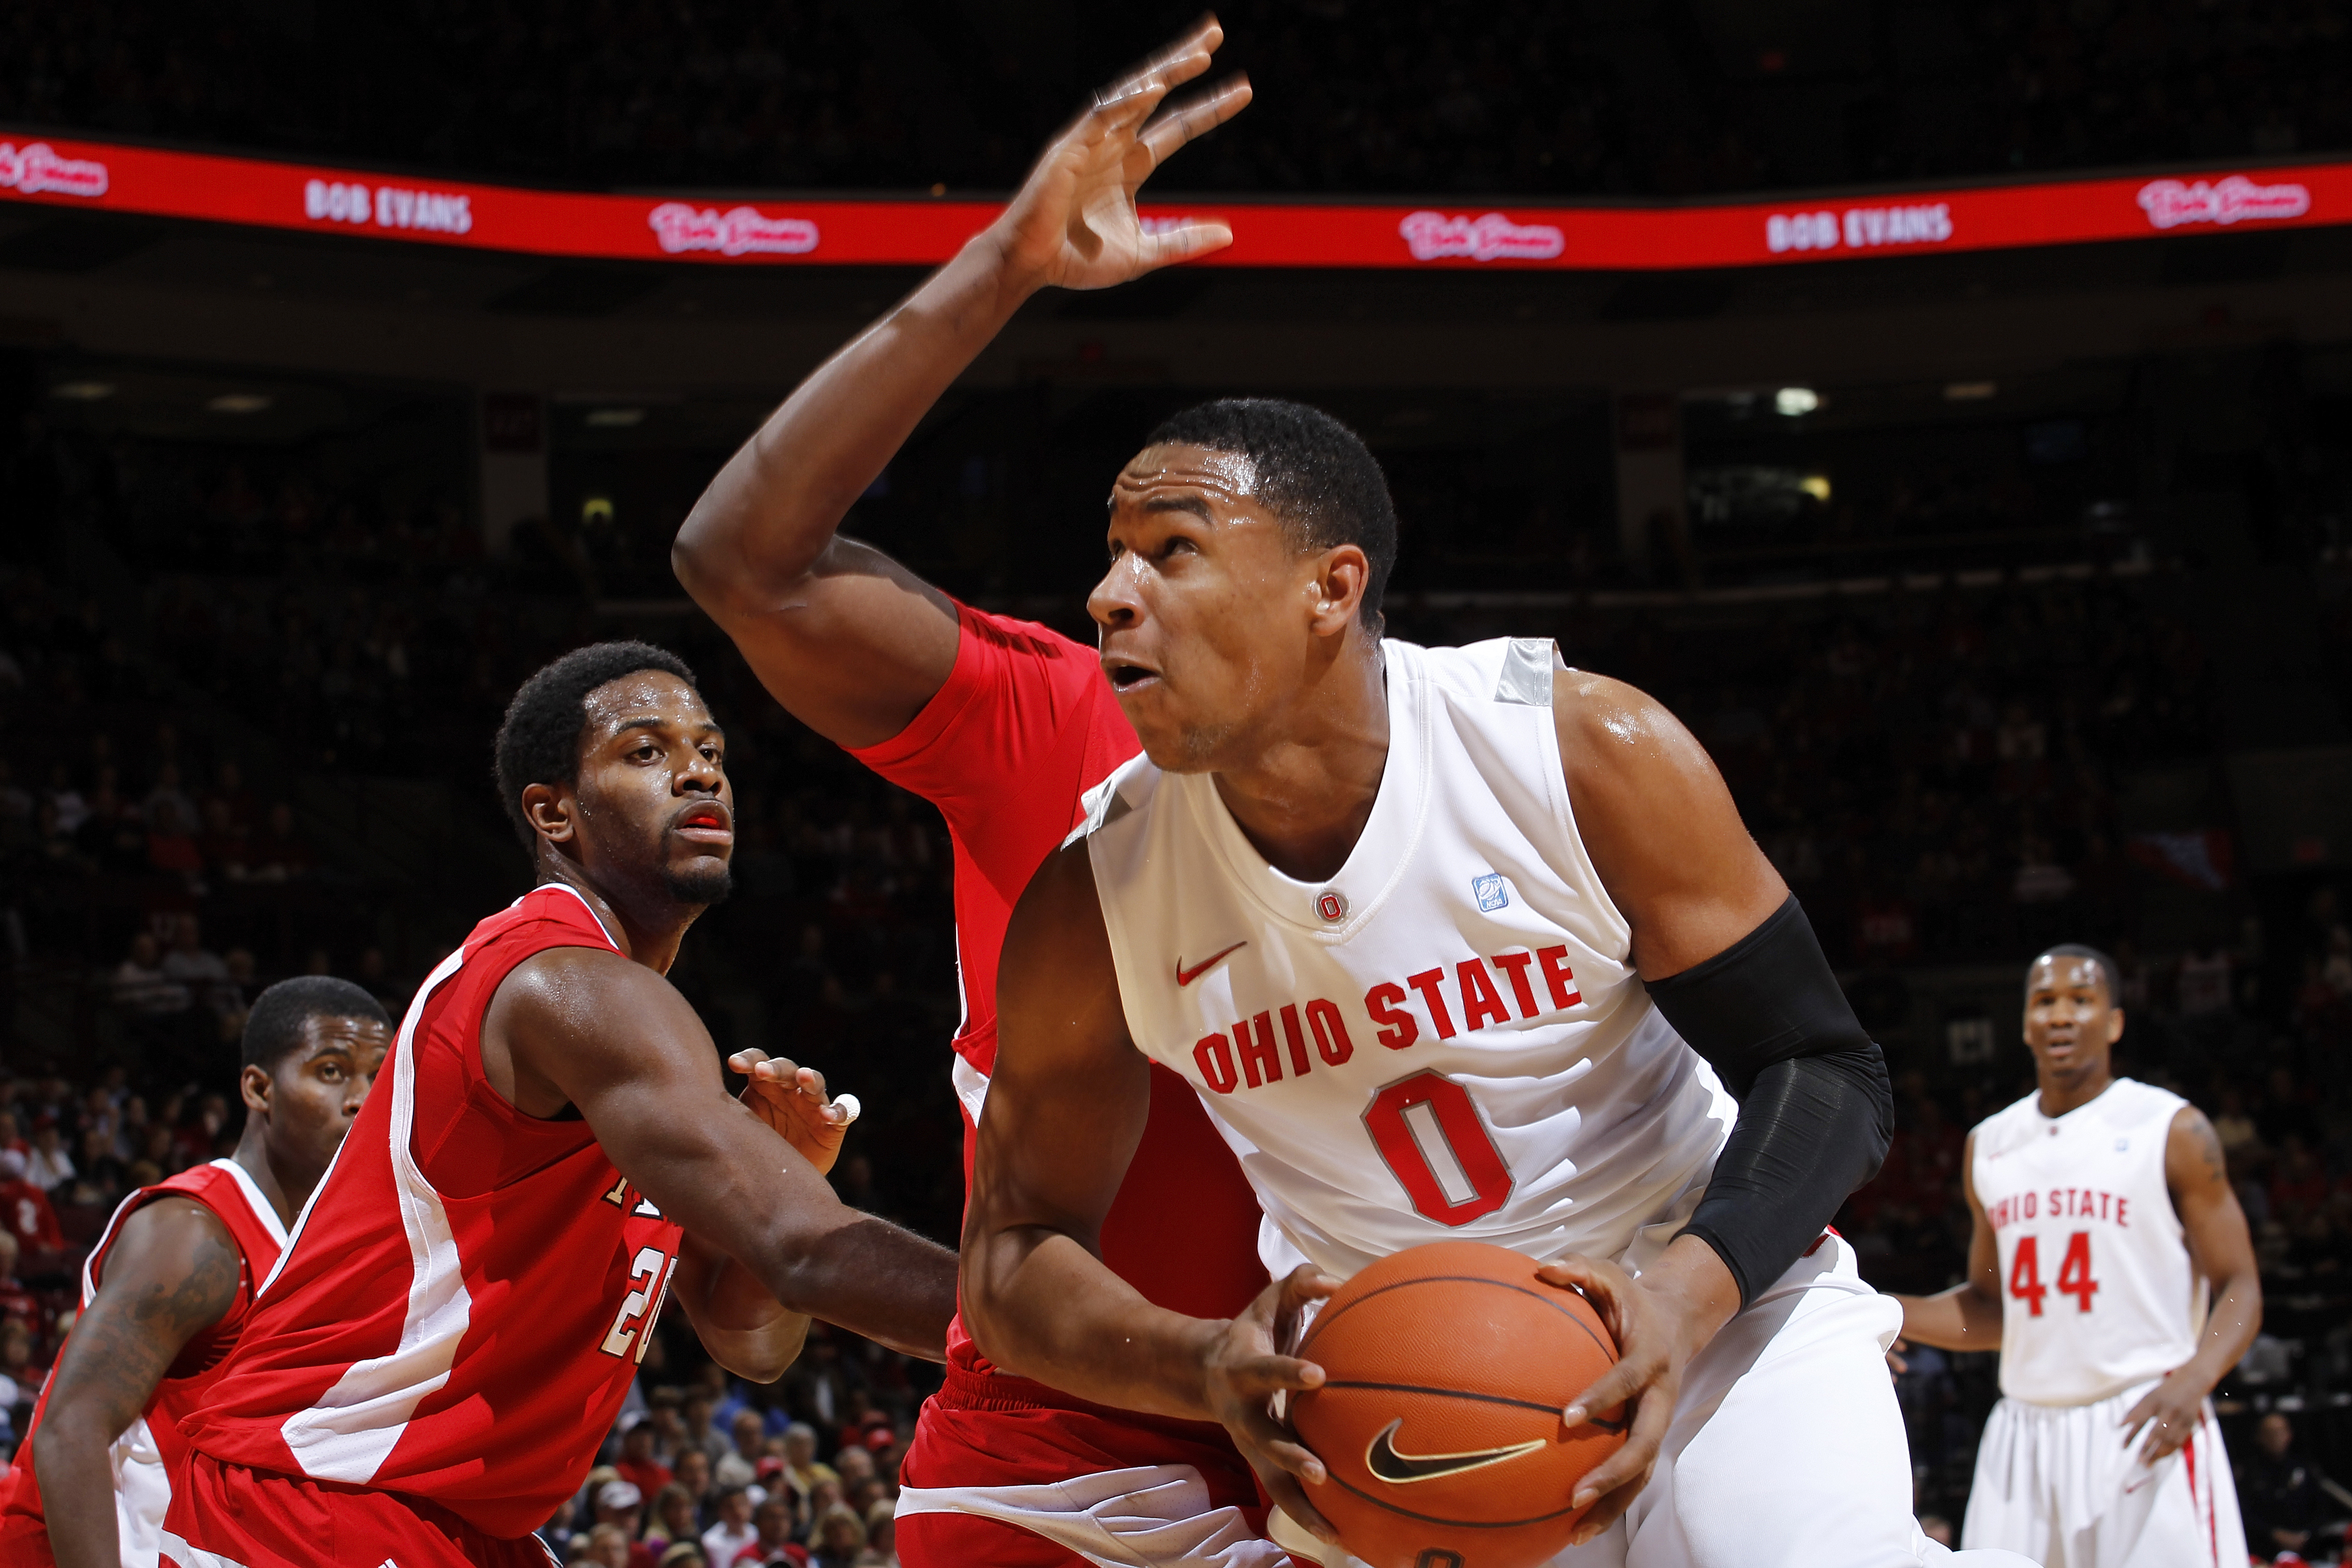 COLUMBUS, OH - NOVEMBER 26: Jared Sullinger #0 of the Ohio State Buckeyes looks to the basket against the Miami RedHawks at Value City Arena on November 26, 2010 in Columbus, Ohio. Ohio State won 66-45. (Photo by Joe Robbins/Getty Images)